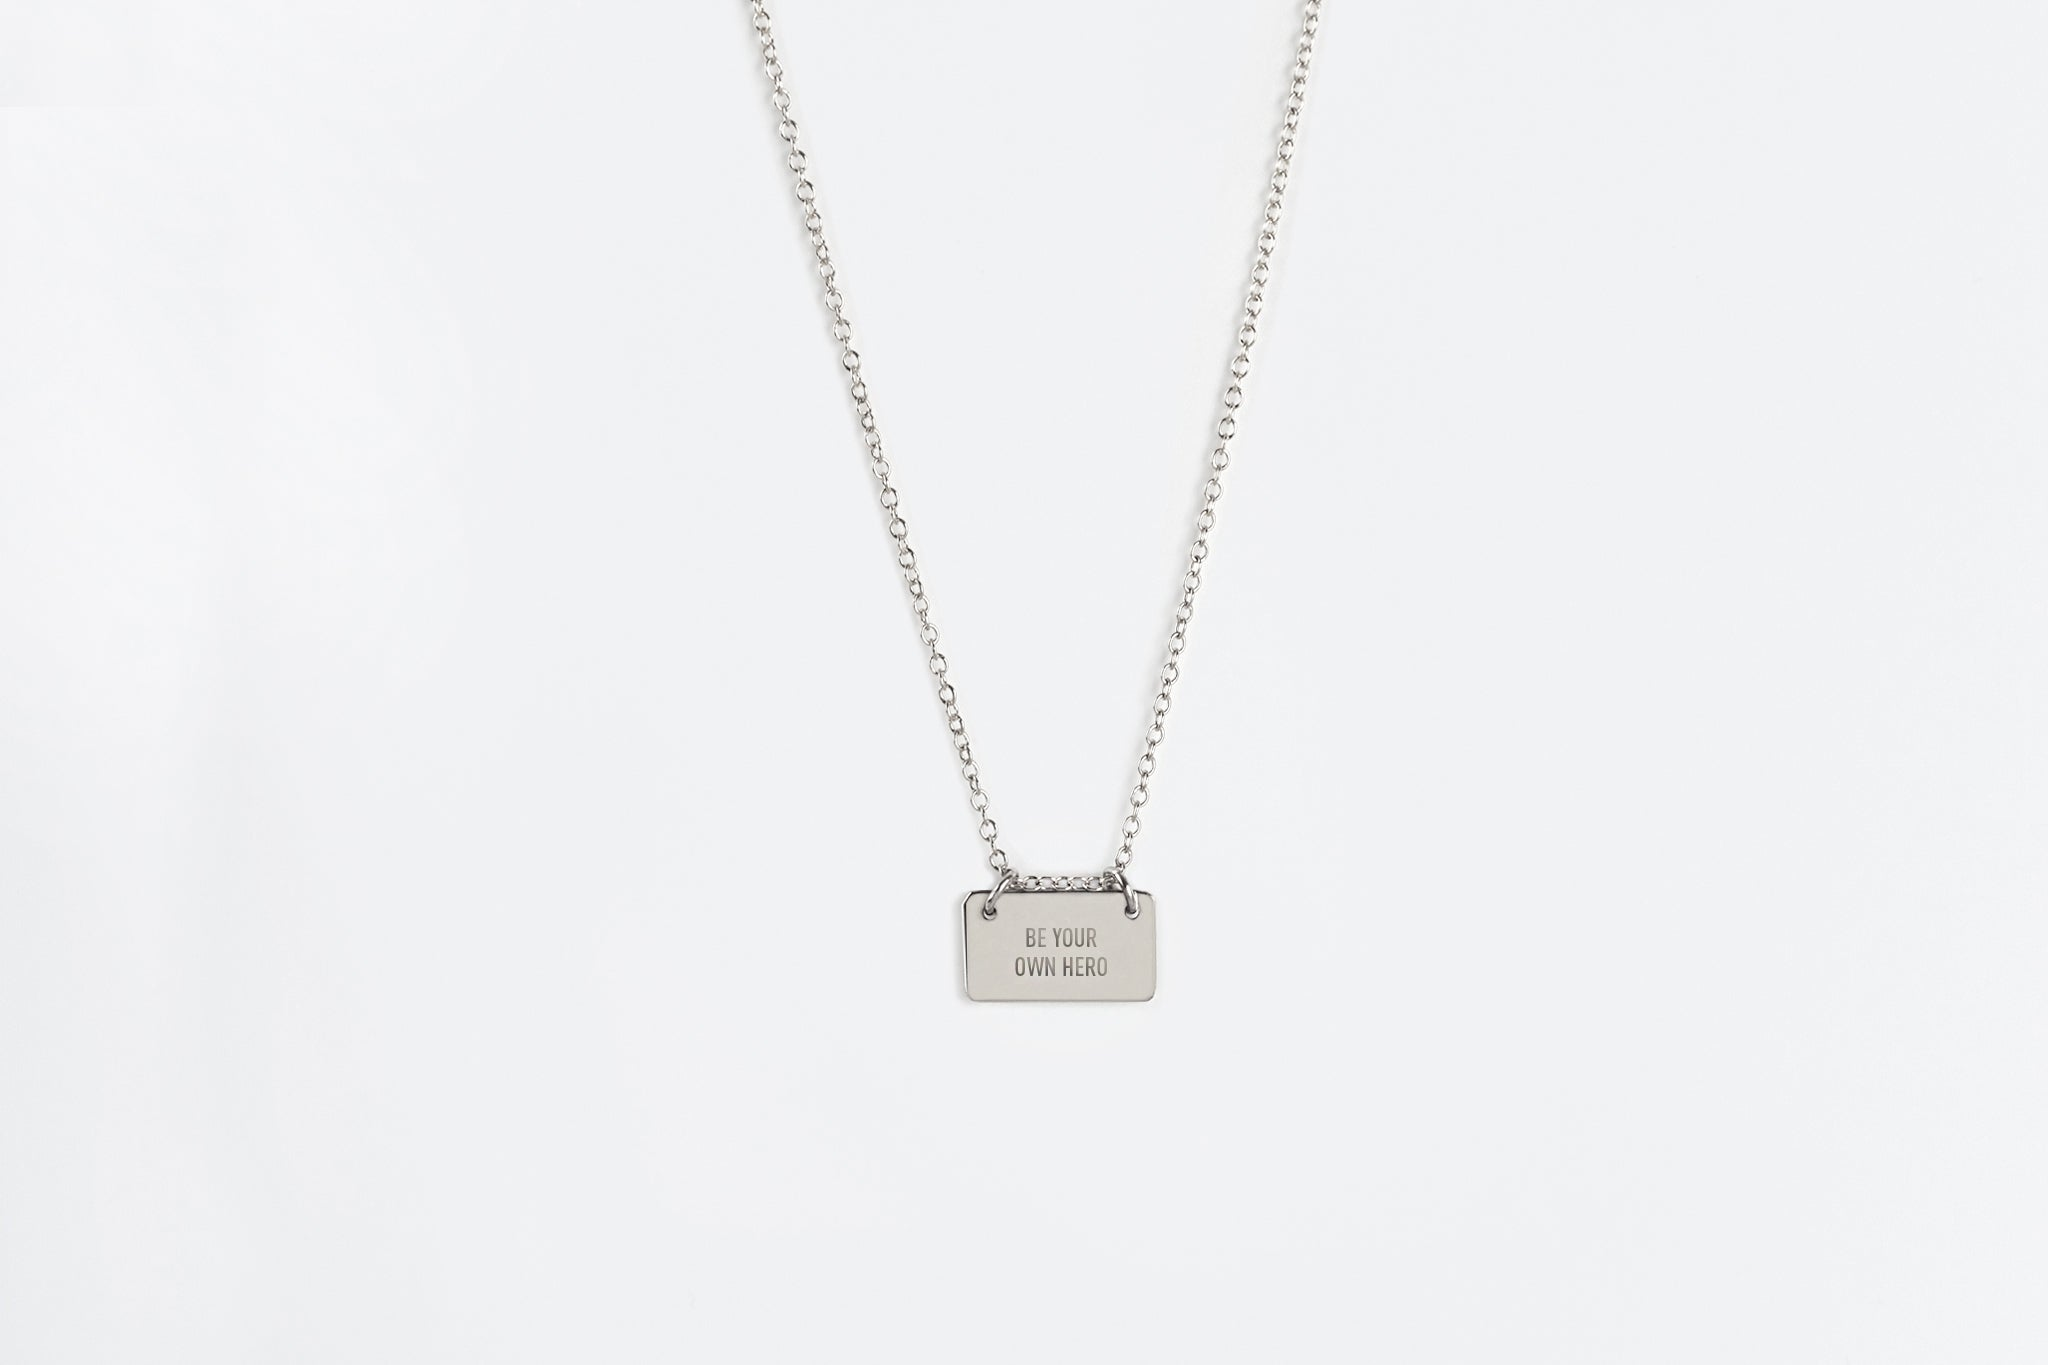 Little Reminder Personalized Charm Necklace